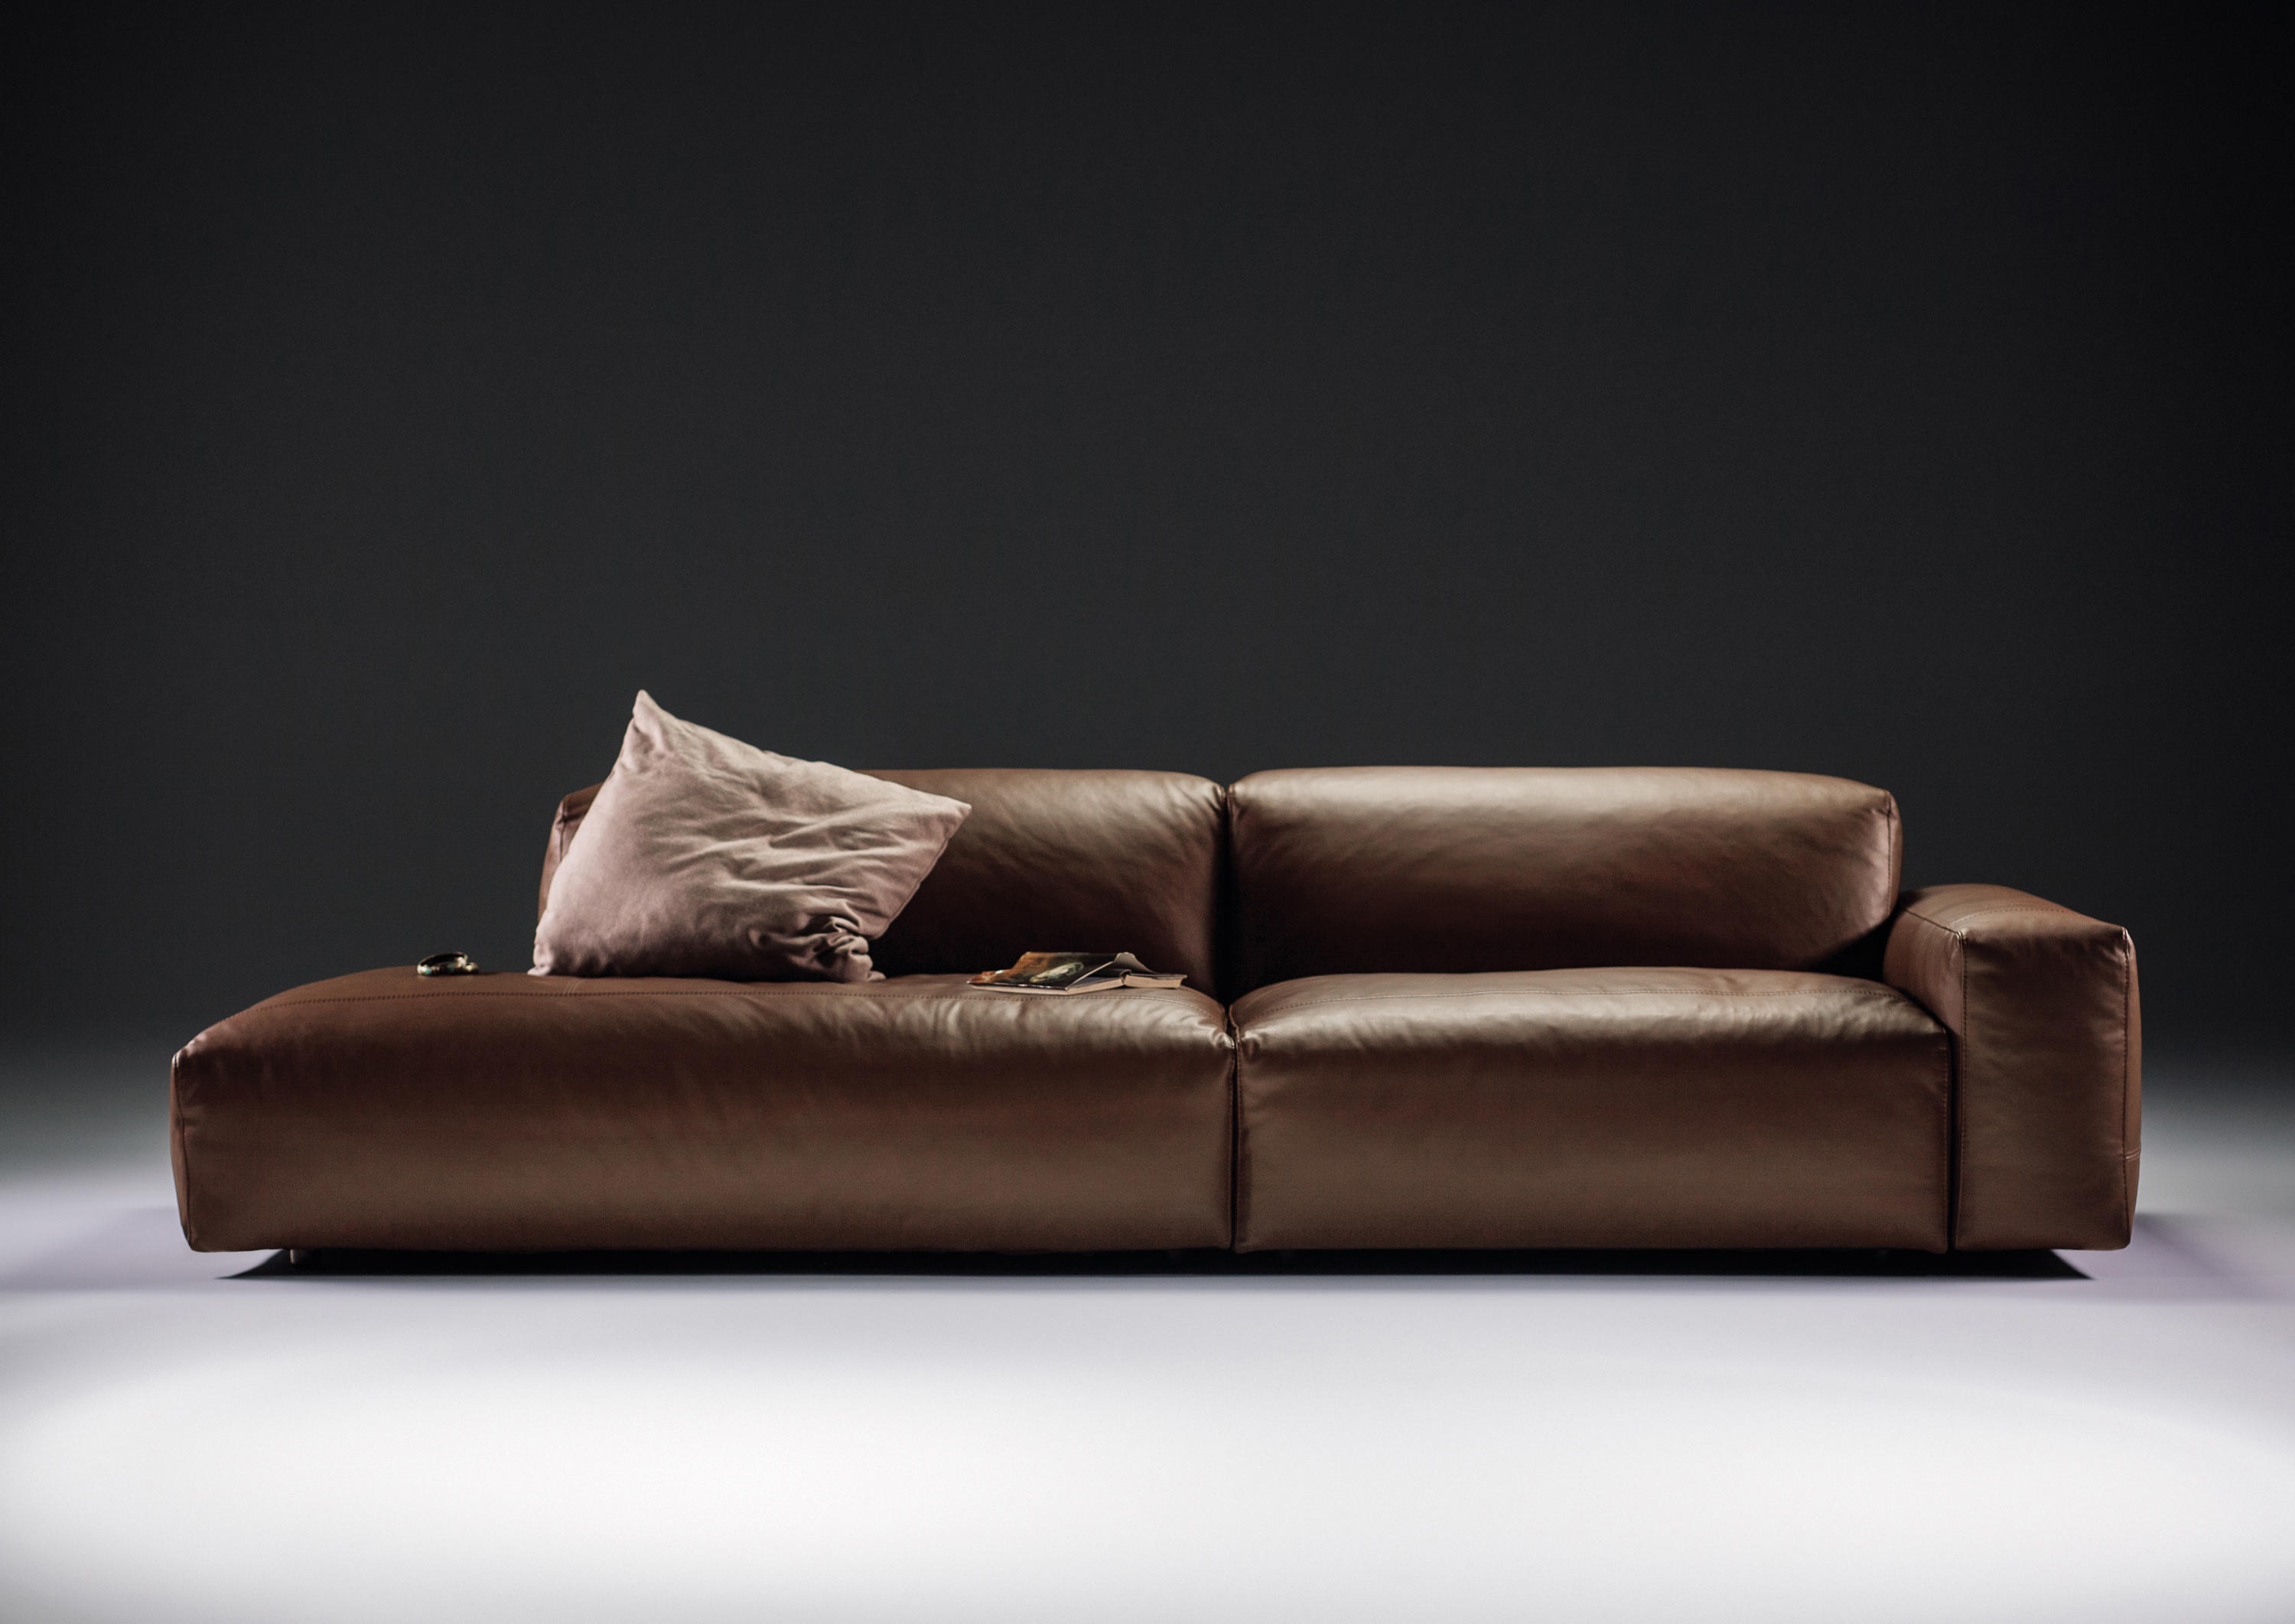 CLOUD CHAISE LONGUE Chaise longues from Prostoria